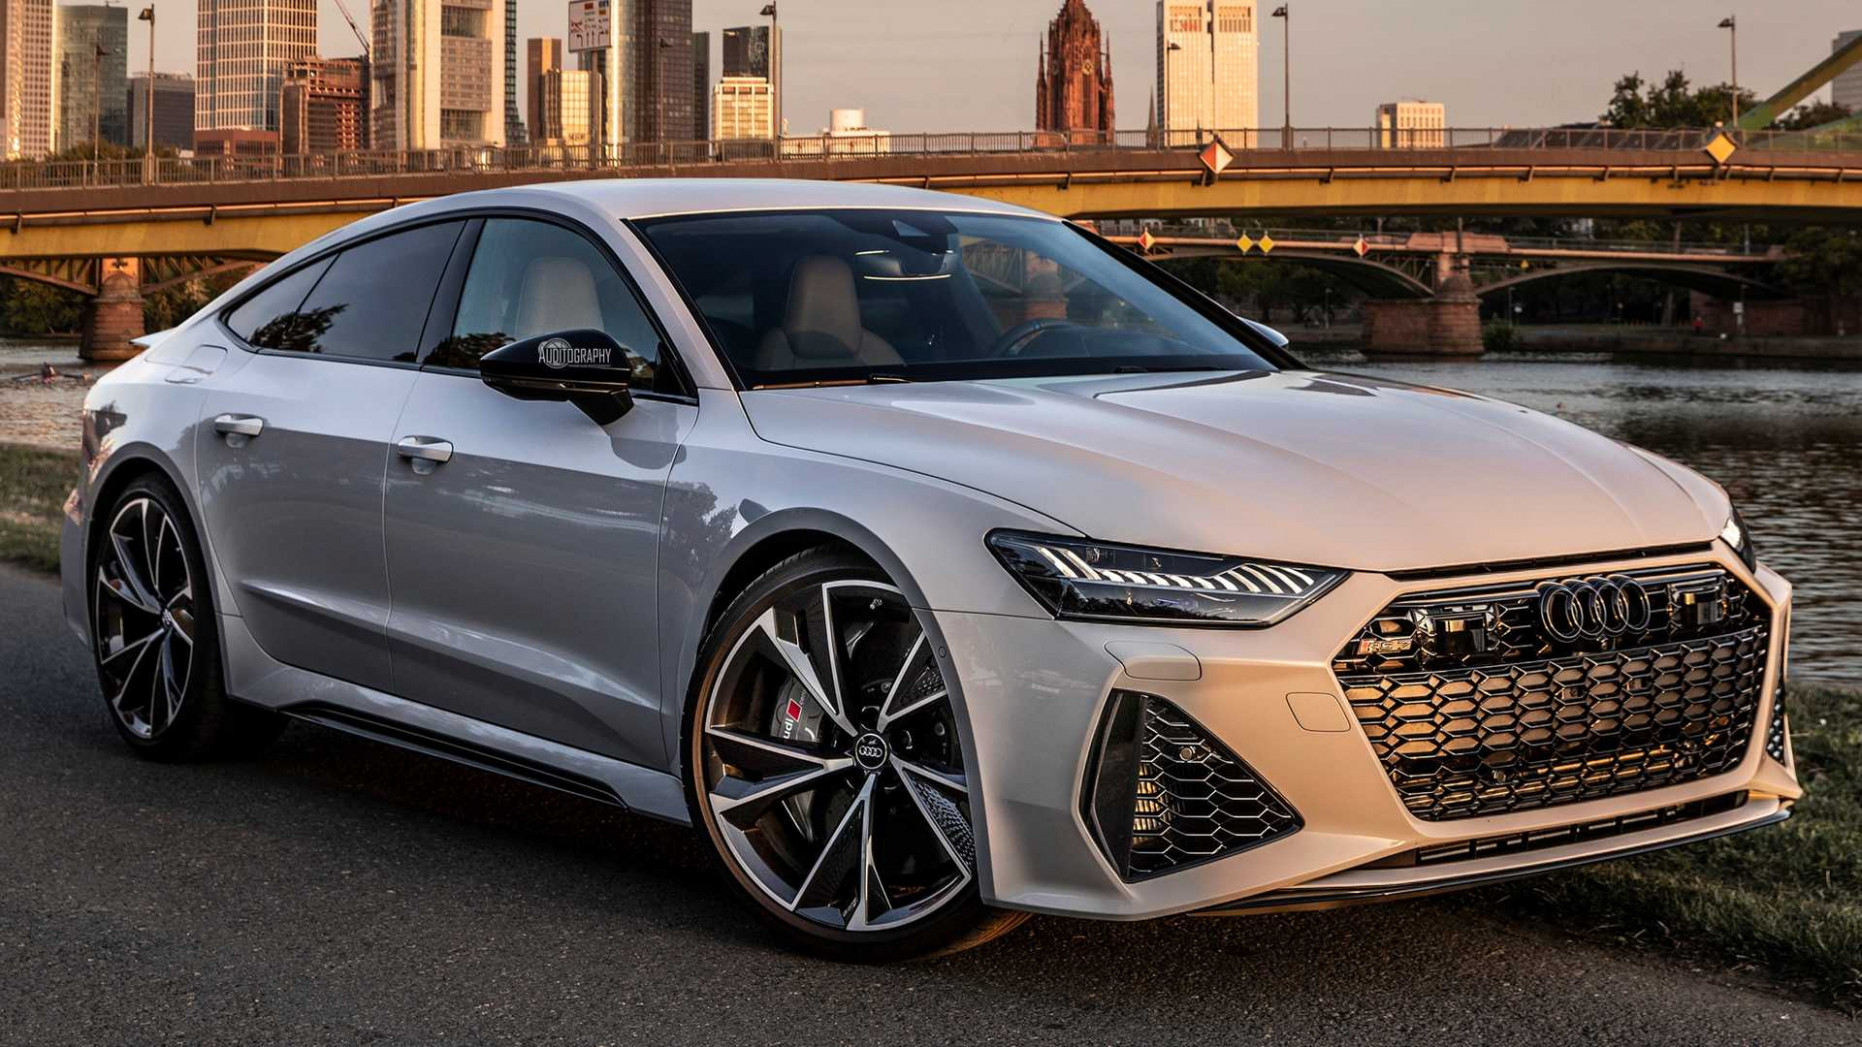 Release Audi Rs7 2022